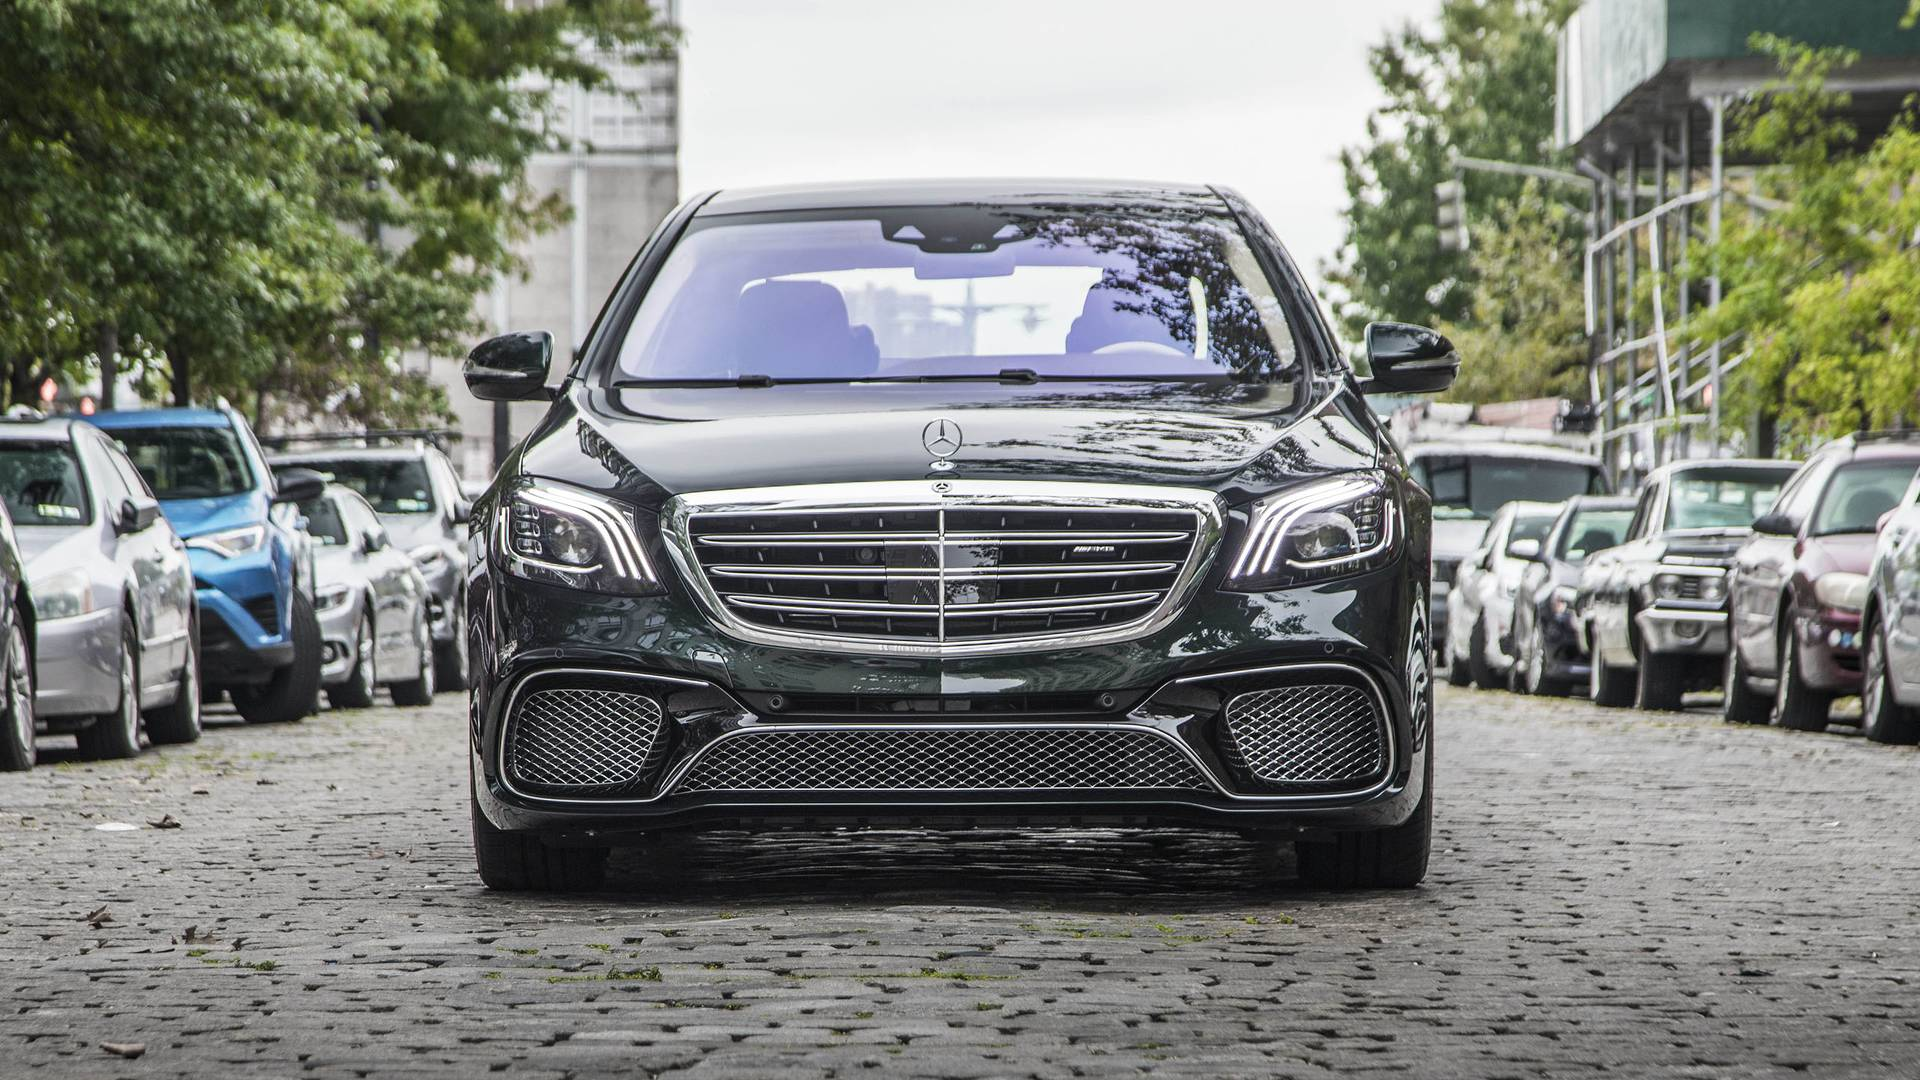 https://icdn-7.motor1.com/images/mgl/PjkPX/s1/2018-mercedes-amg-s65-review.jpg